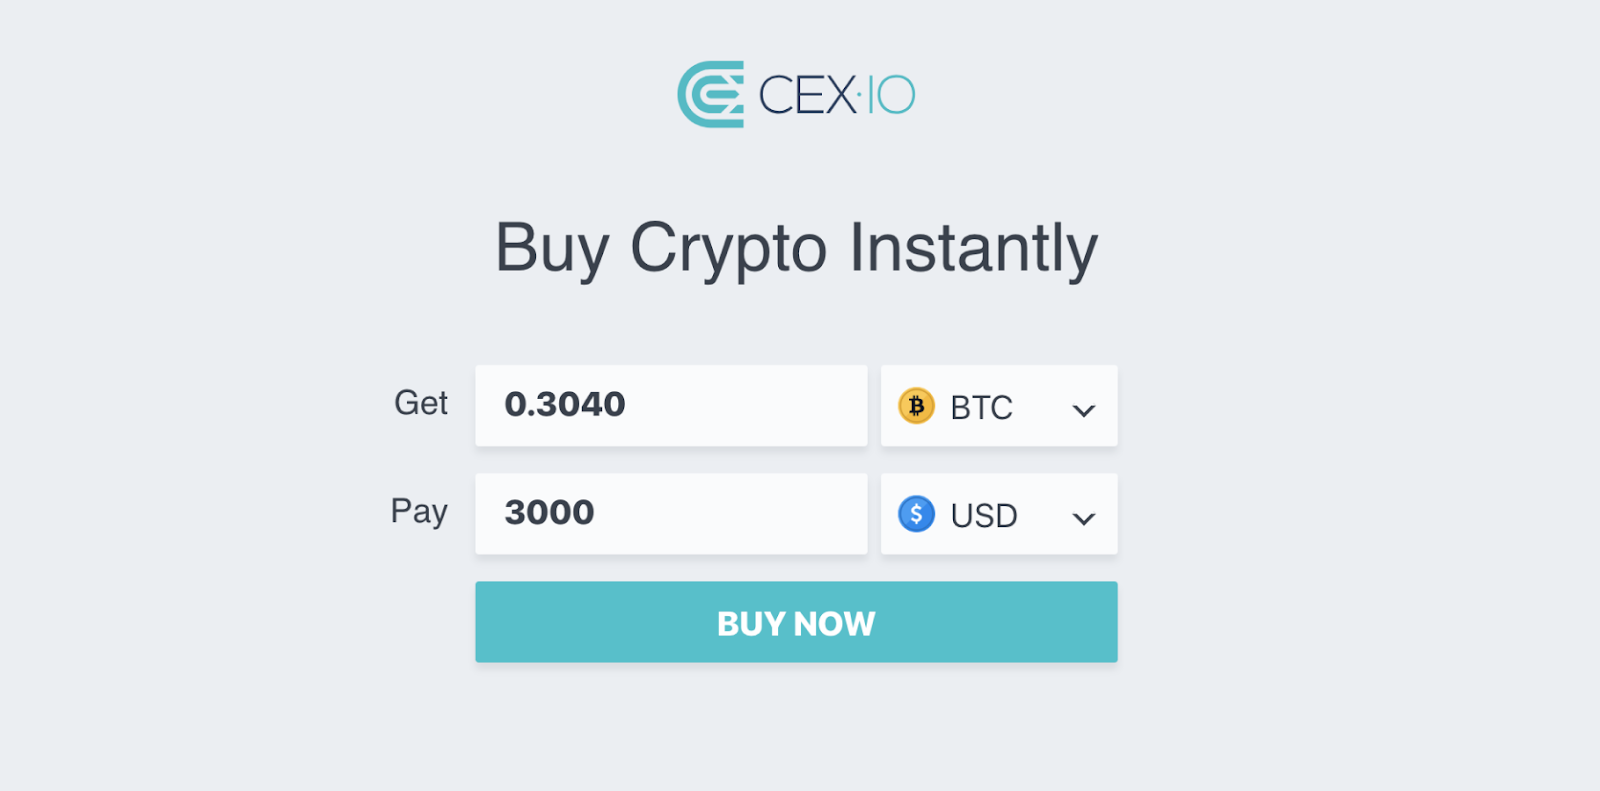 CEX screenshot buy cryptos instantly